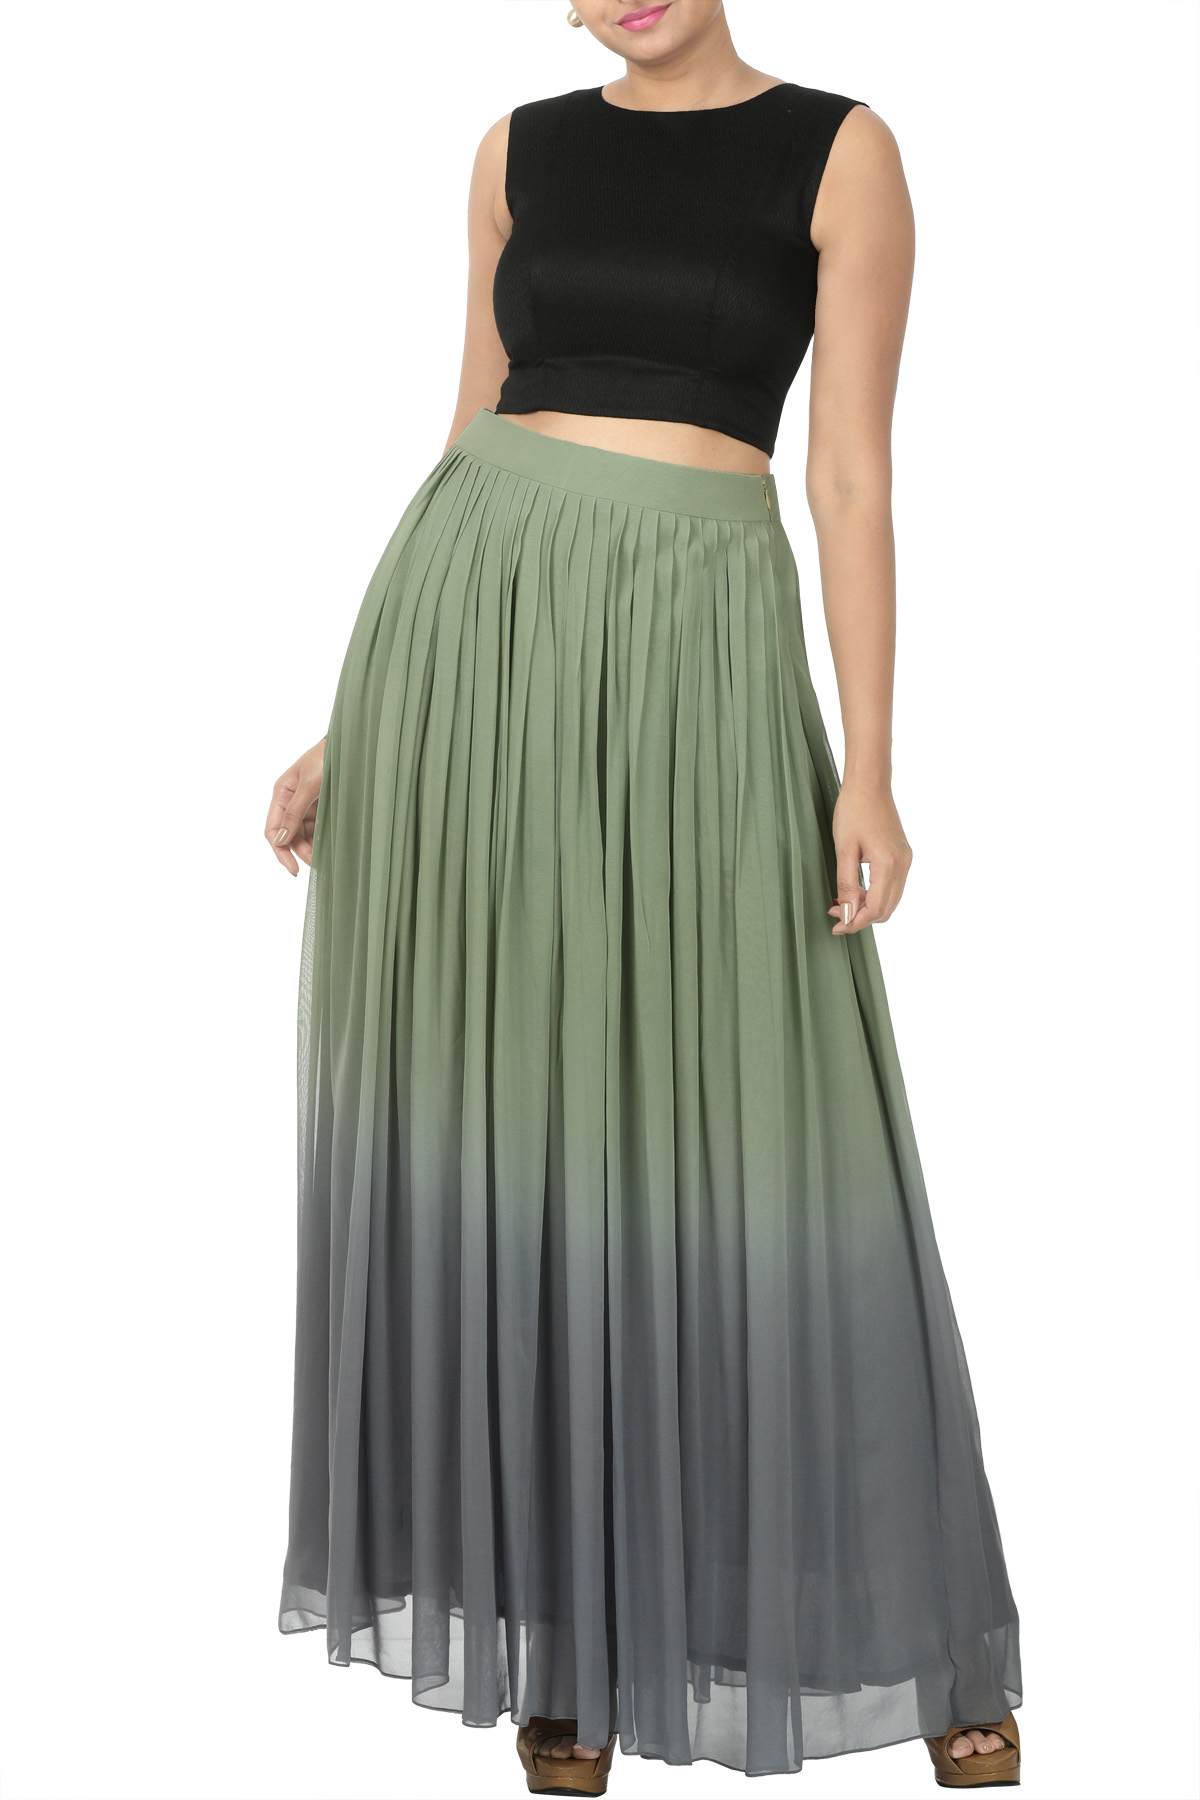 Ombre dyed skirt